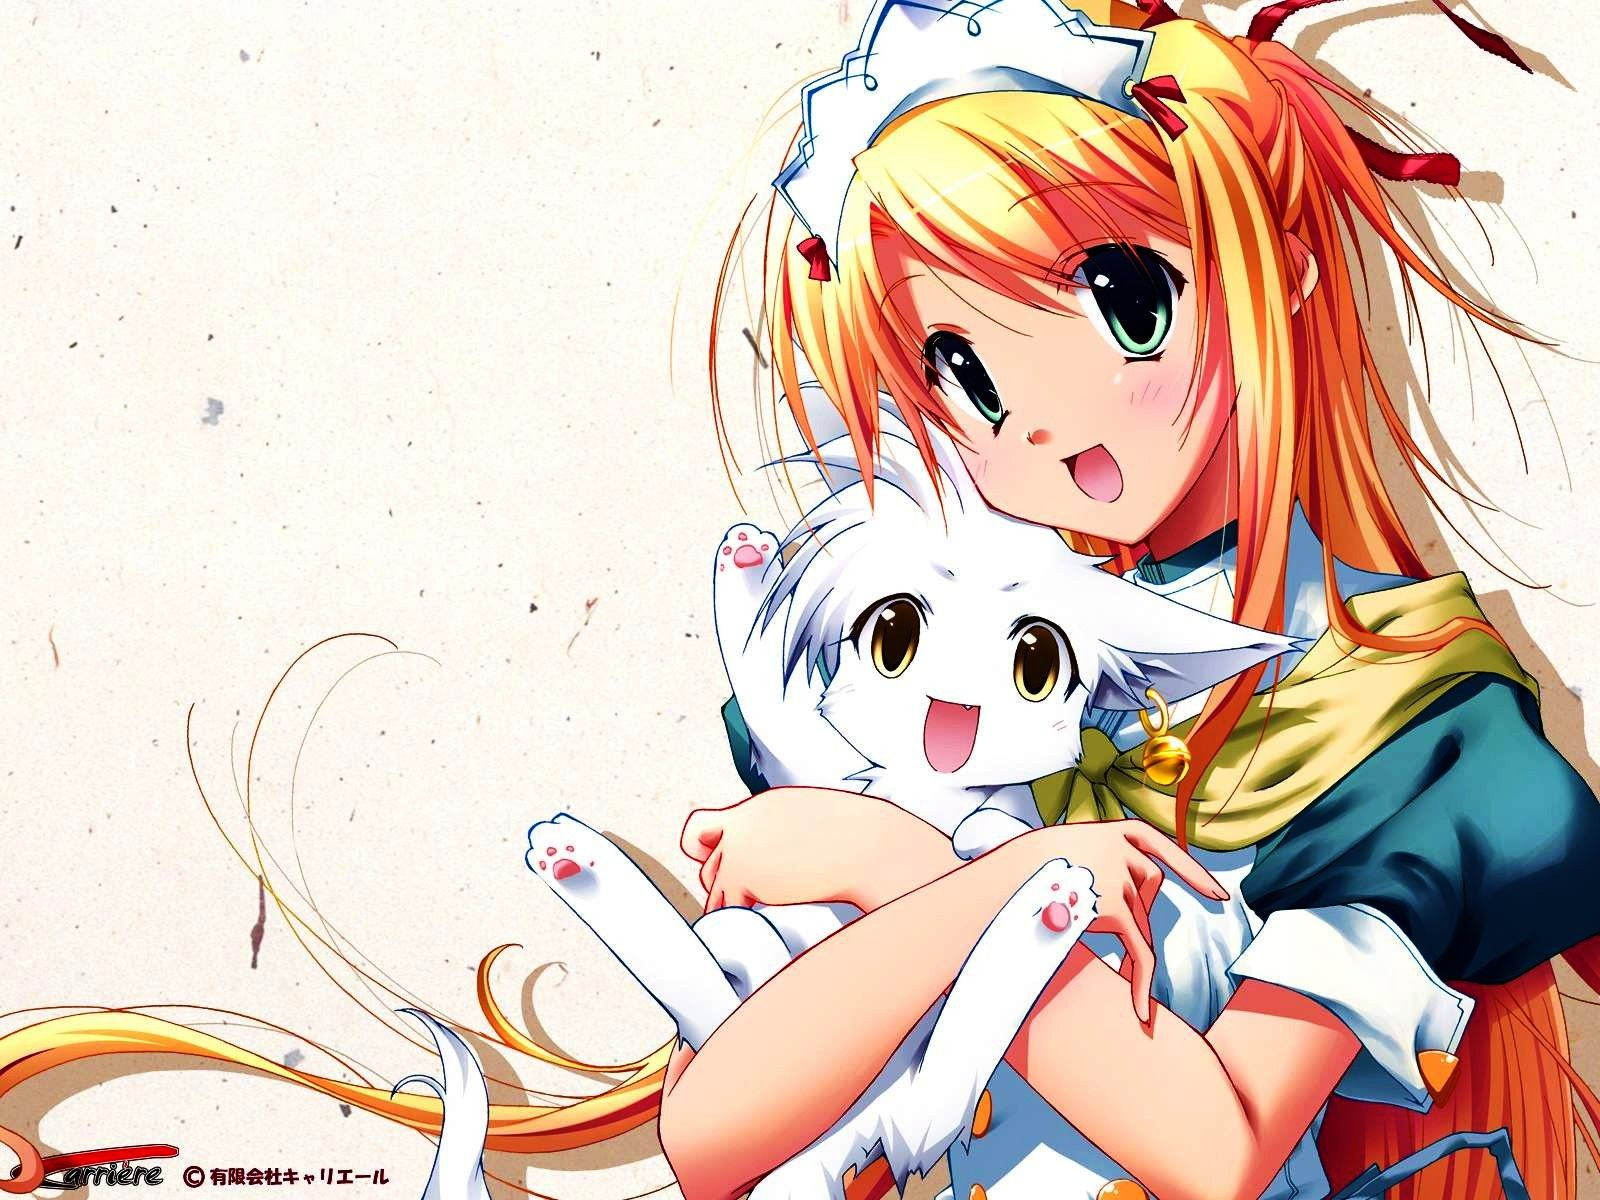 red haired anime girl with white cat | Anime Girls | Pinterest